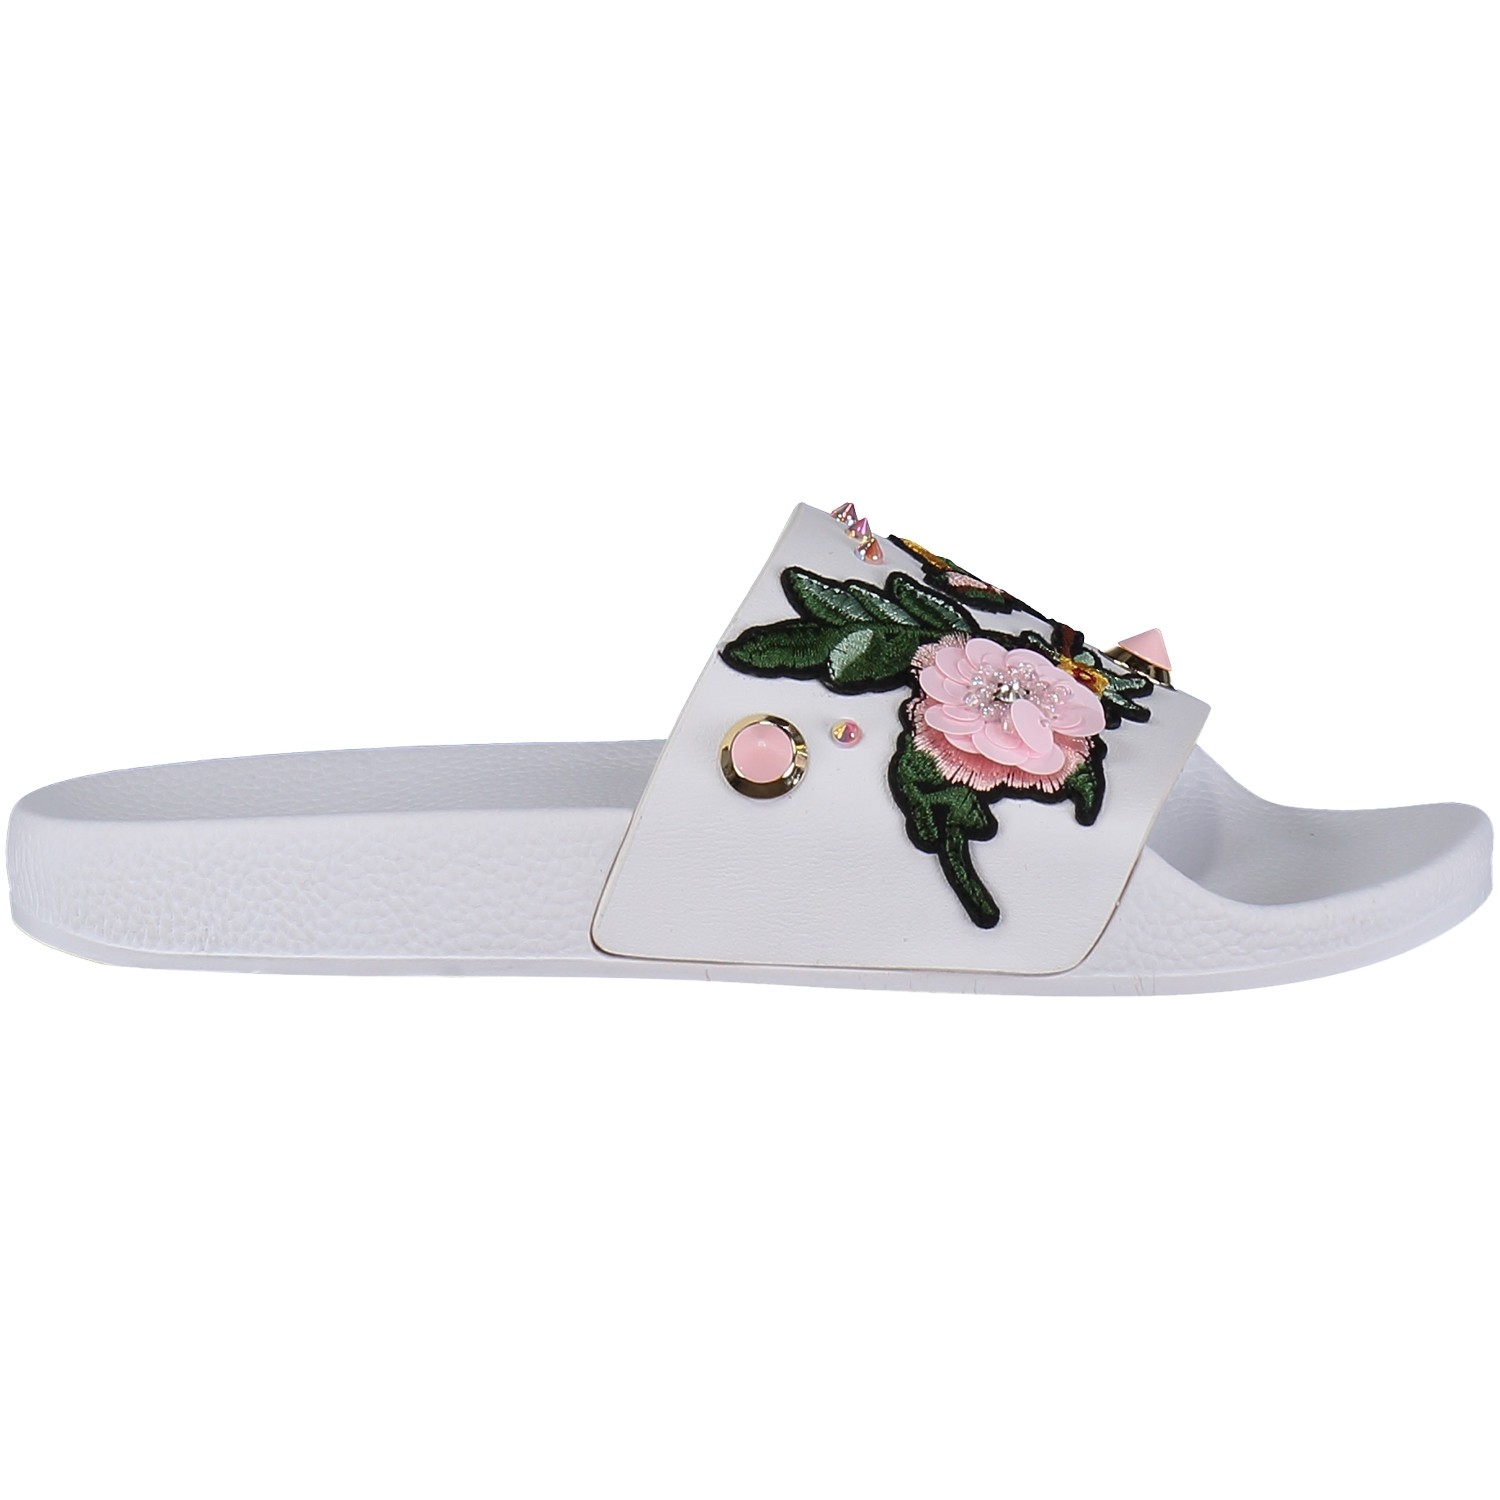 Afbeelding van The white Brand ASIAN dames slippers wit